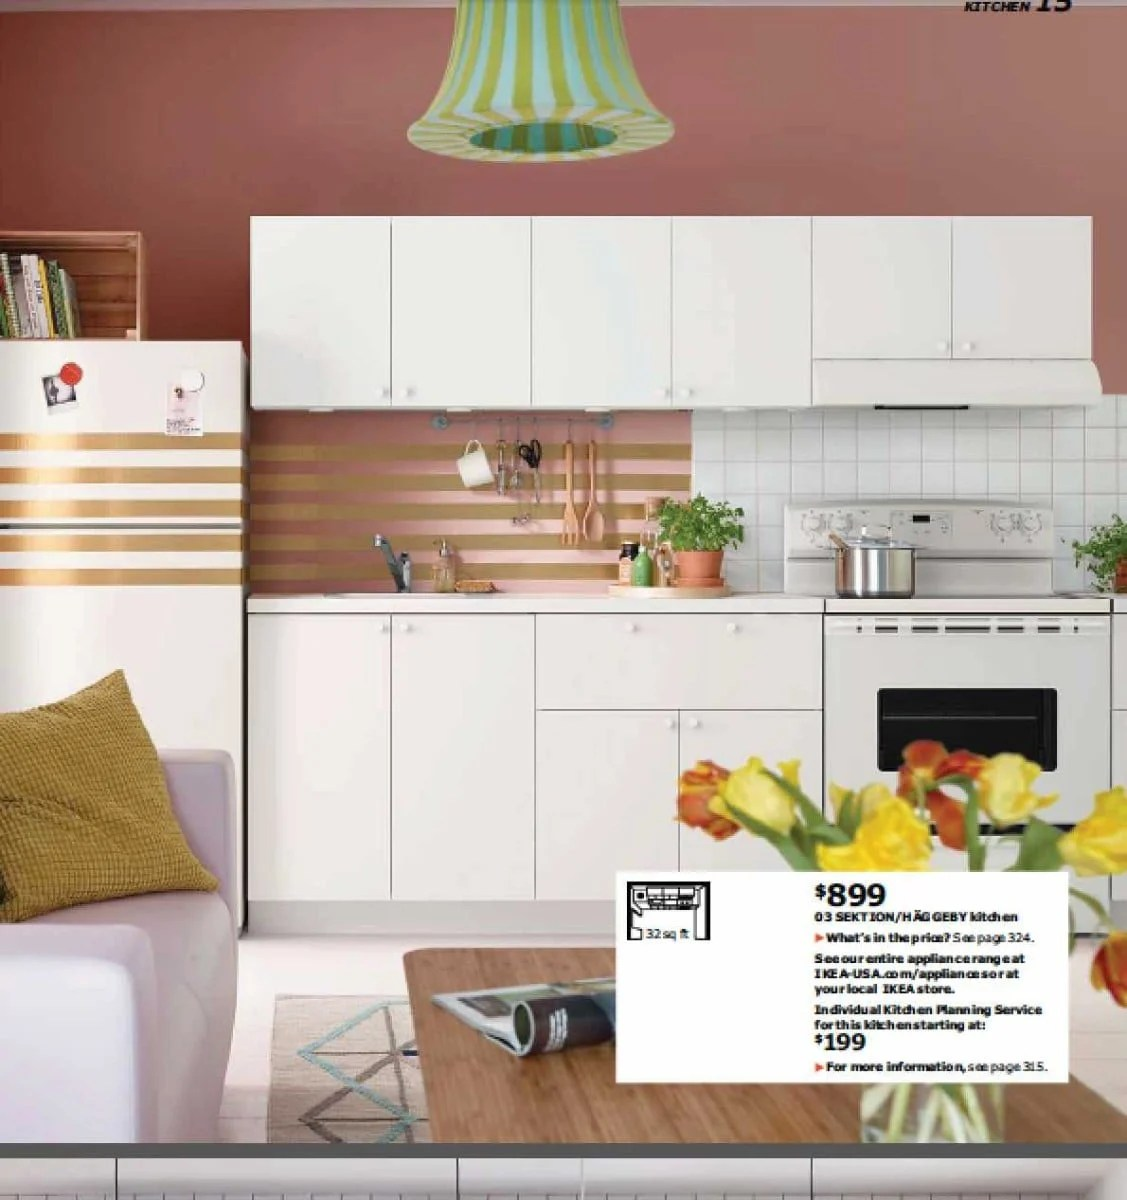 Iu0027ll Start From The Kitchen And Dining Sections And Work My Way Through The  Catalog. Letu0027s Take A Look. Here Are My Top 16 Picks From The IKEA Catalog  2016.